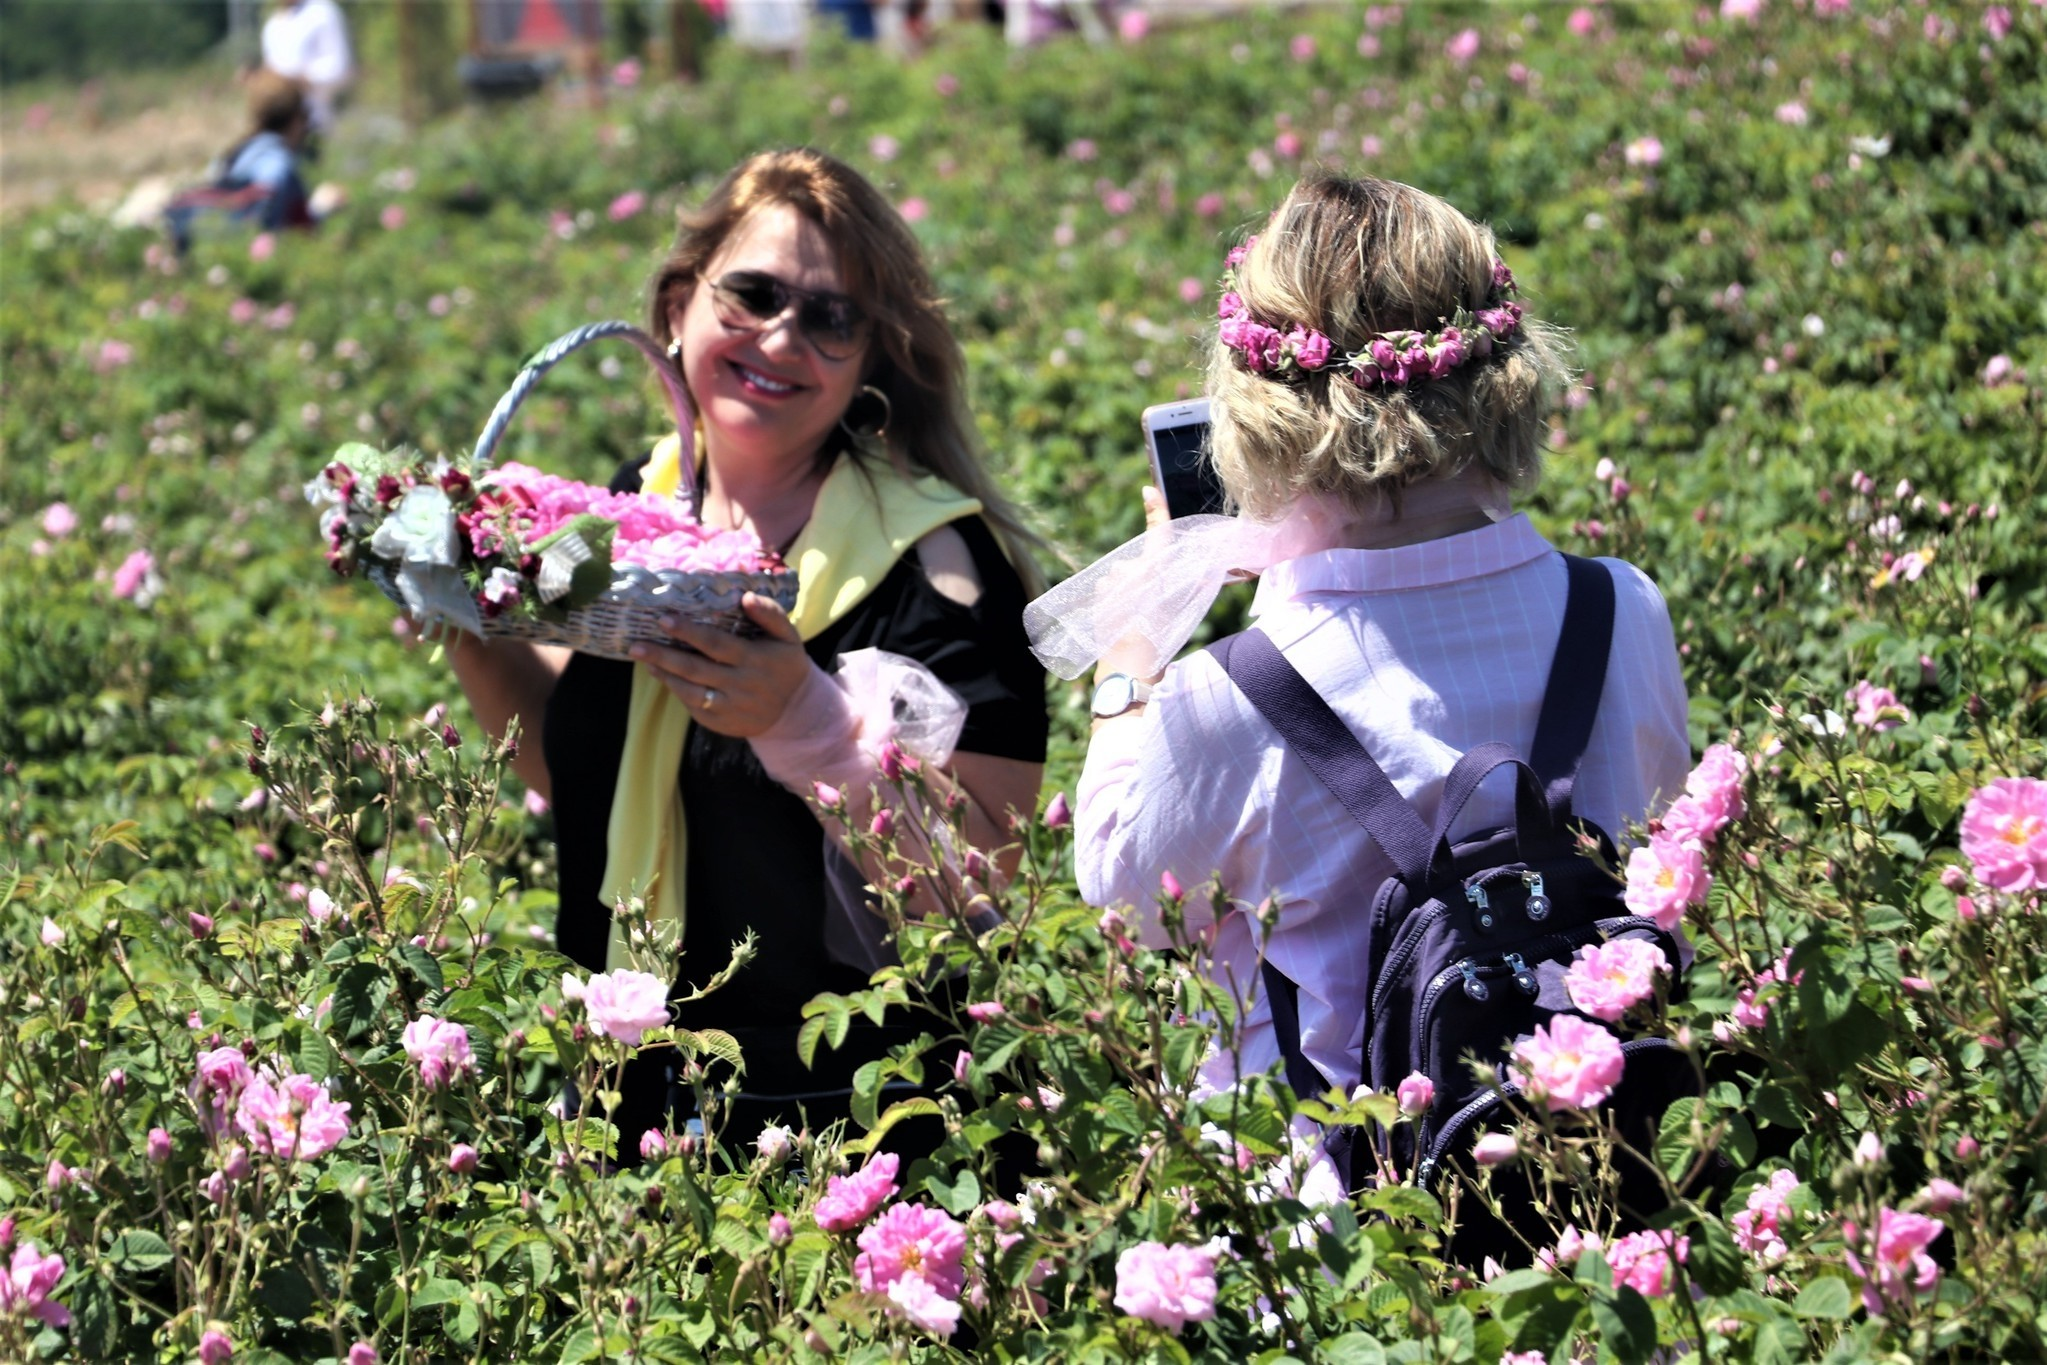 Tourists can also take part and learn the process of rose oil production from petals.